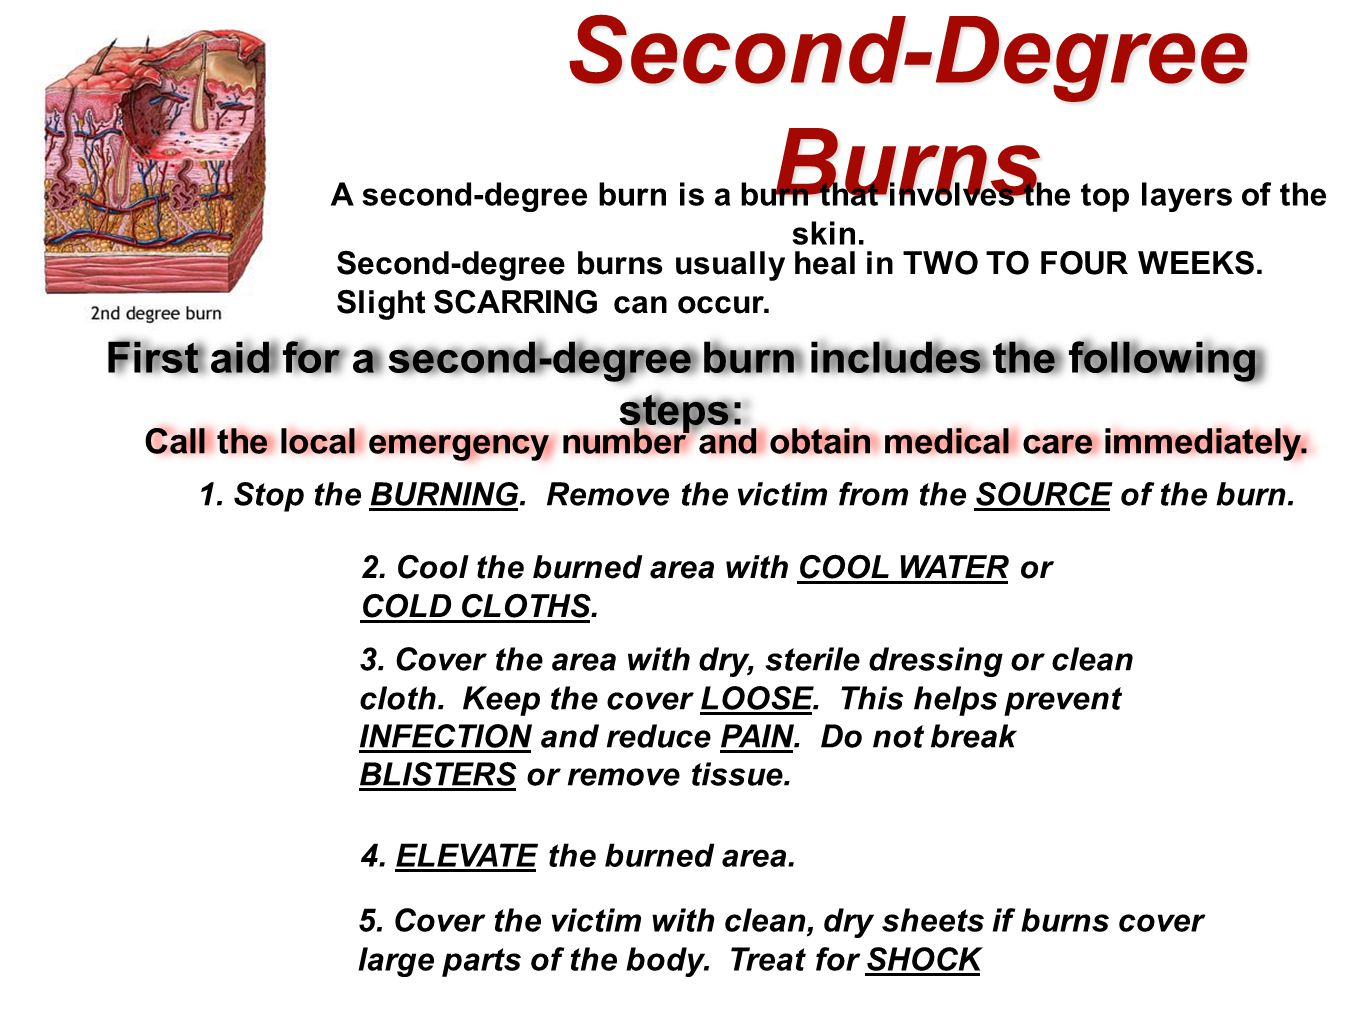 First aid for a second-degree burn includes the following steps: